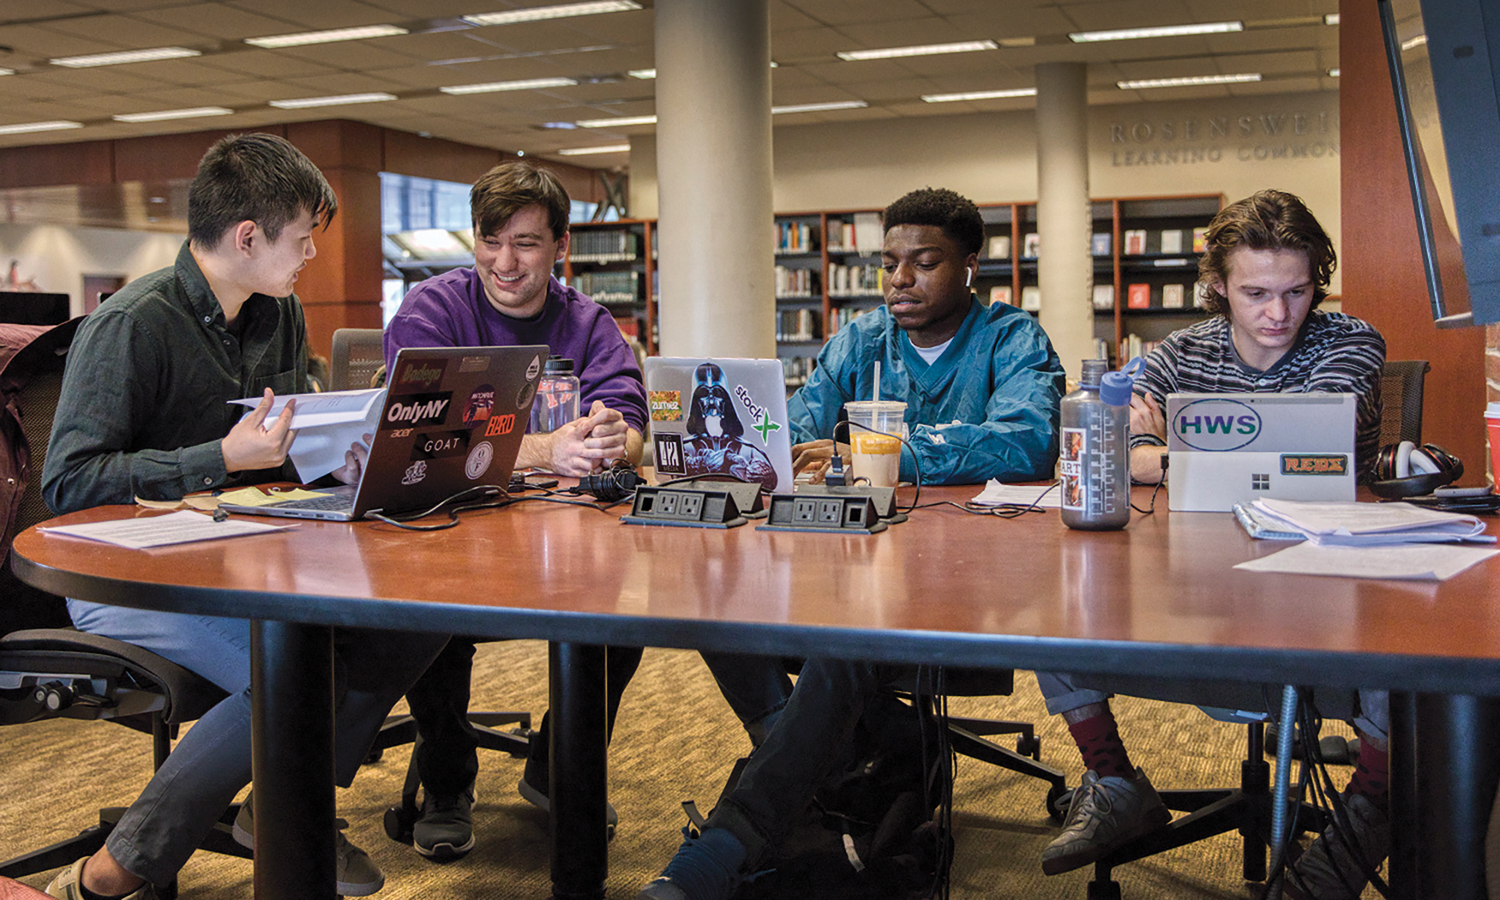 Kevin Lin '20, Hugh Nick Mckenny '20, MAT '21, Israel Oyedapo '20 and Quinn McFeeters '20 study in the Warren Hunting Smith Library.